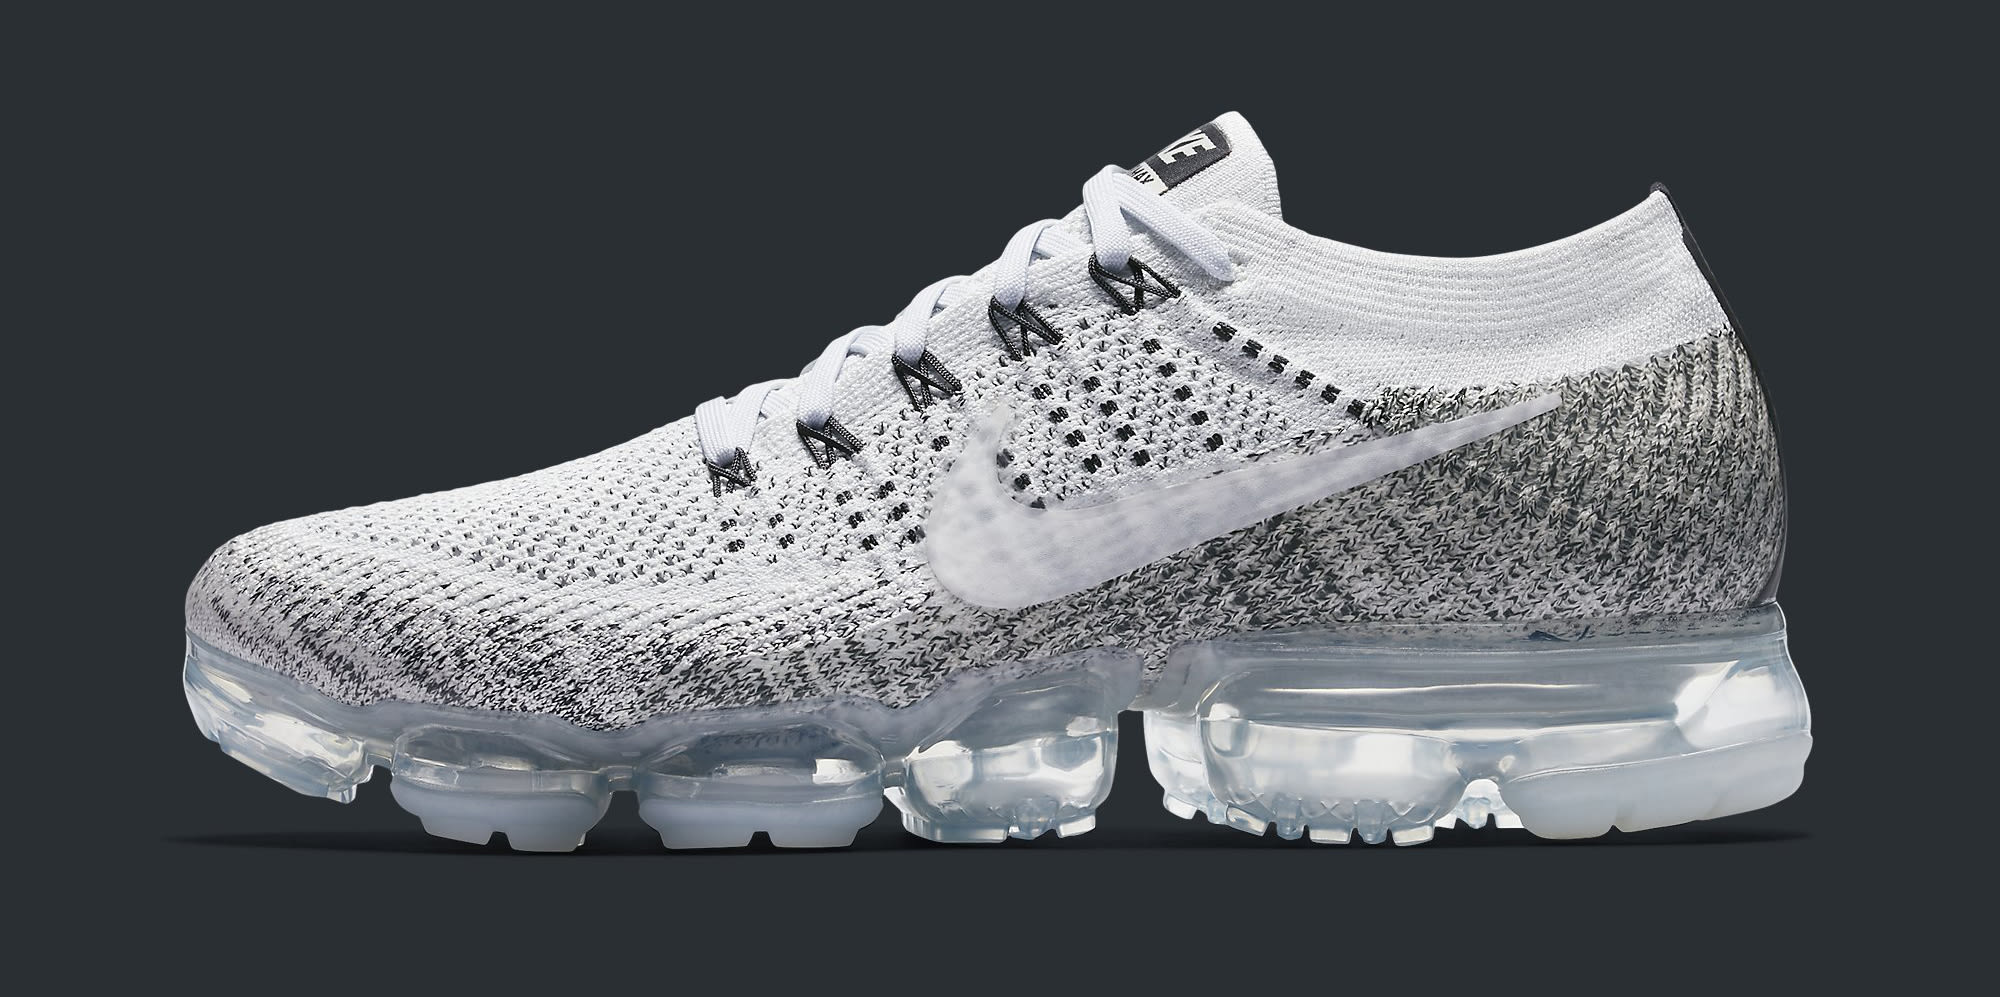 NIKE AIR VAPORMAX FLYKNIT DARK GREY/BLACK 849558 002